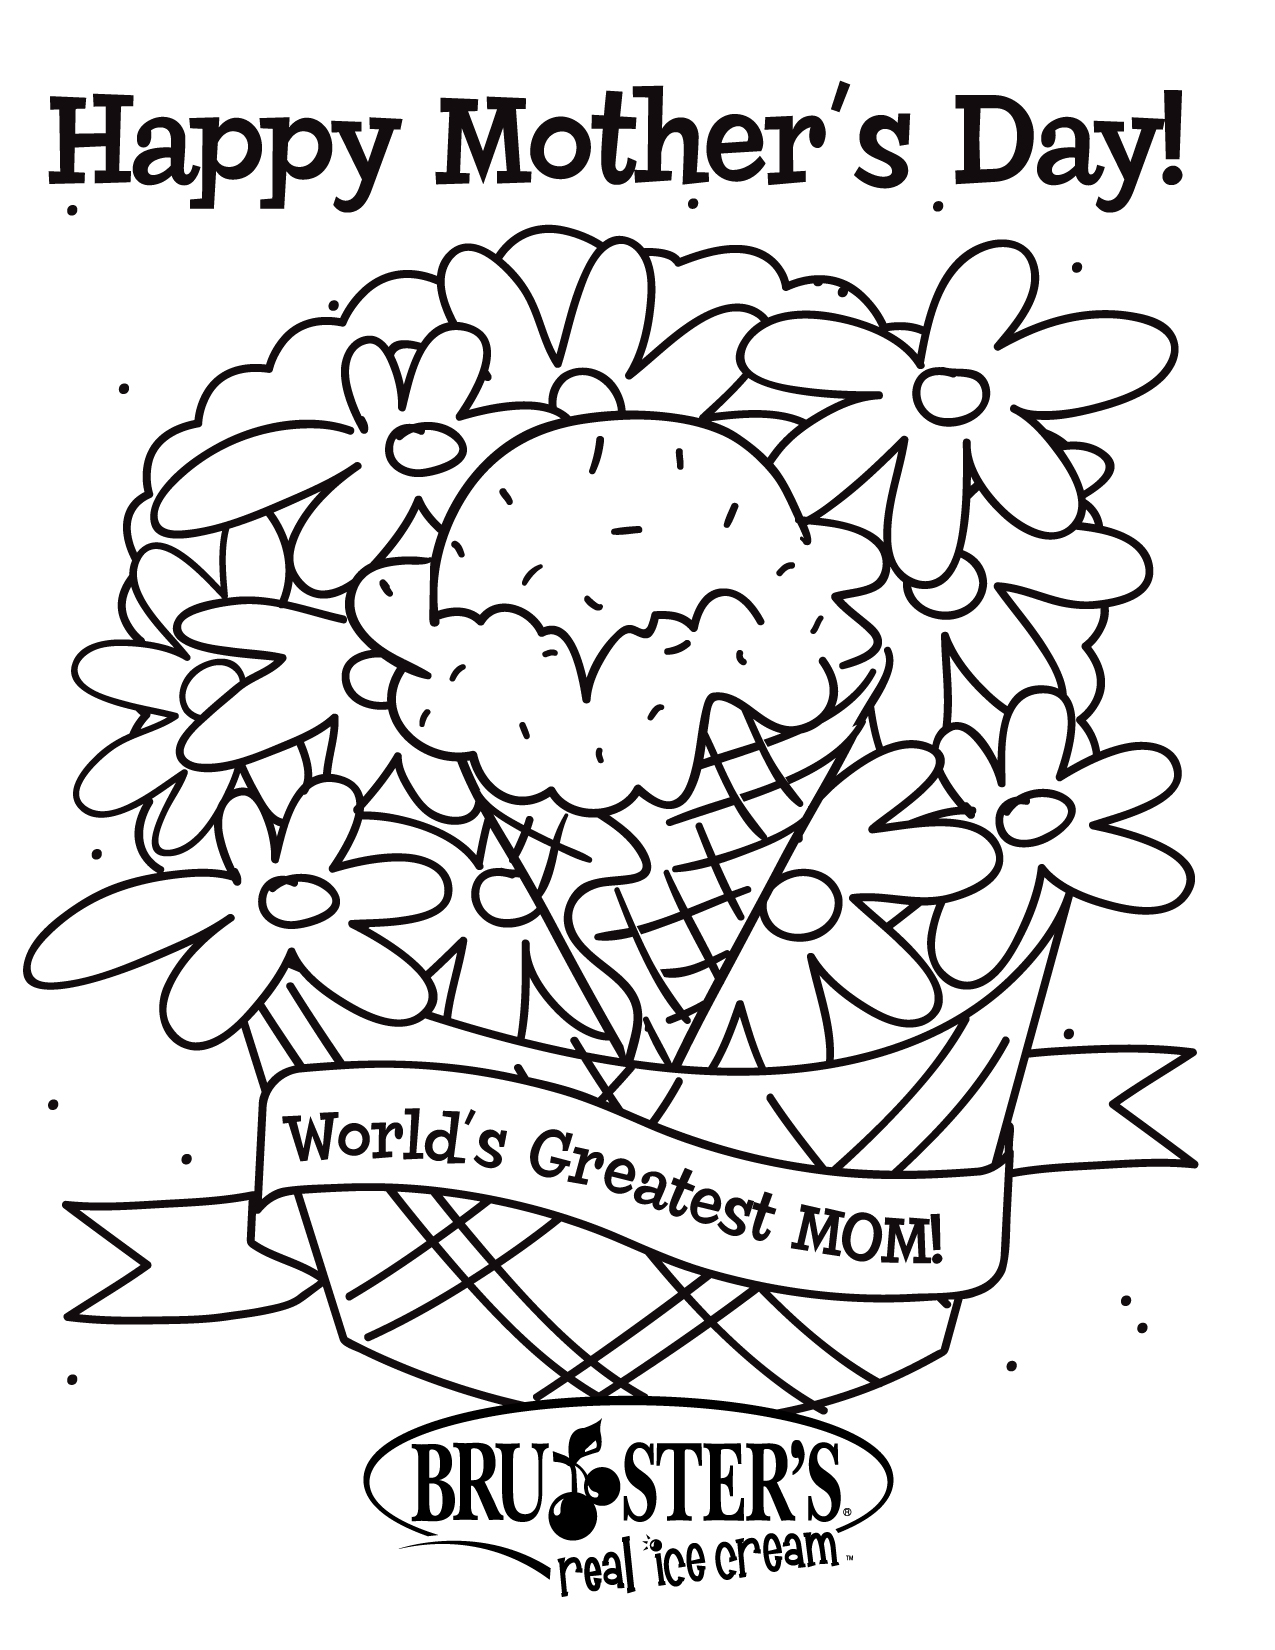 Coloring Pages For Mother's Day Free Printable Mothers Day Coloring Pages For Kids